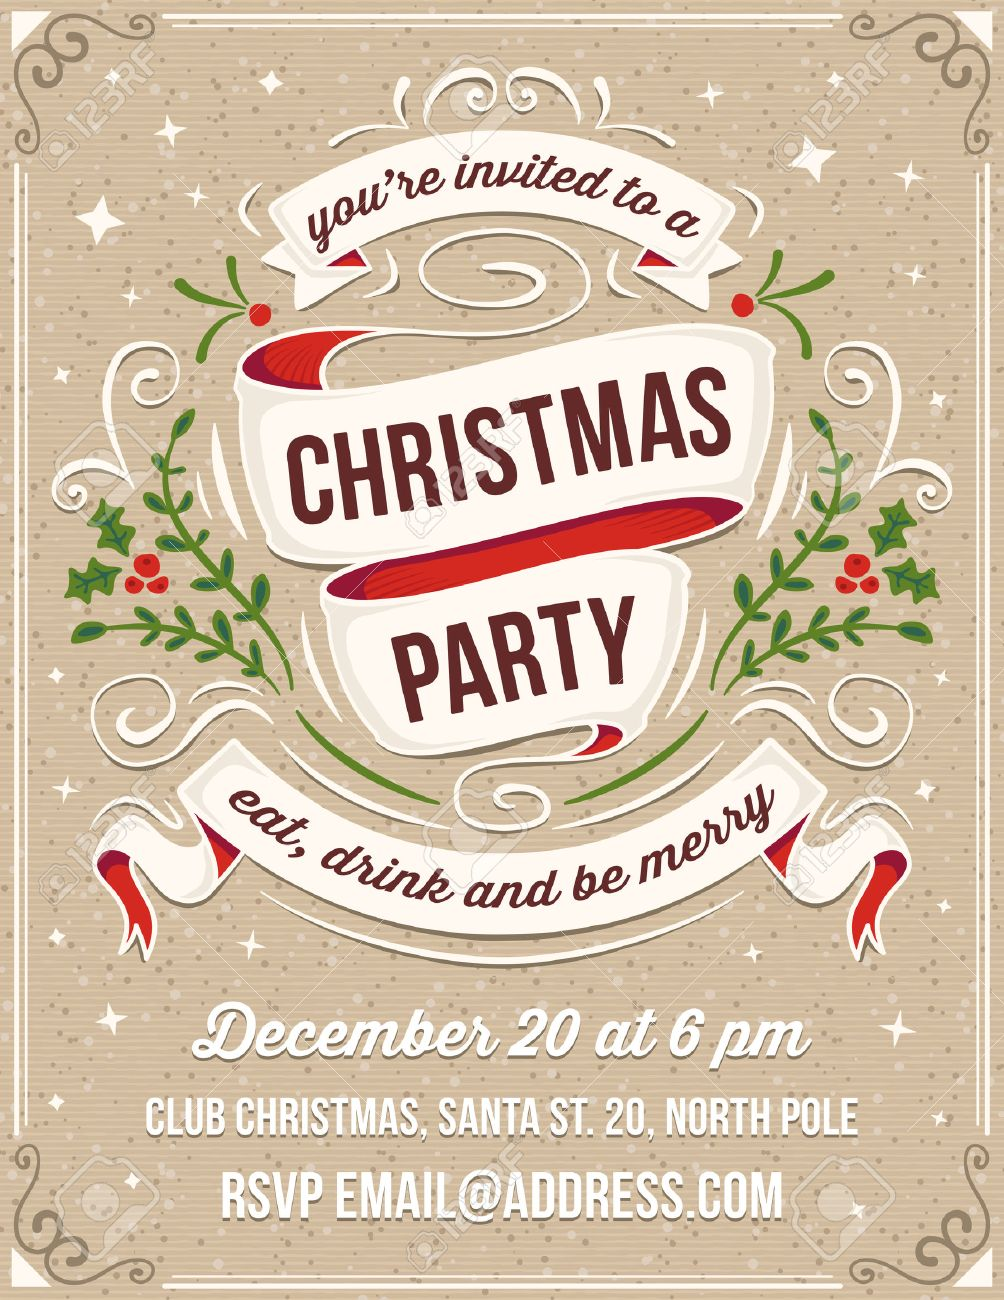 hand drawn christmas party invitation only solid fills used